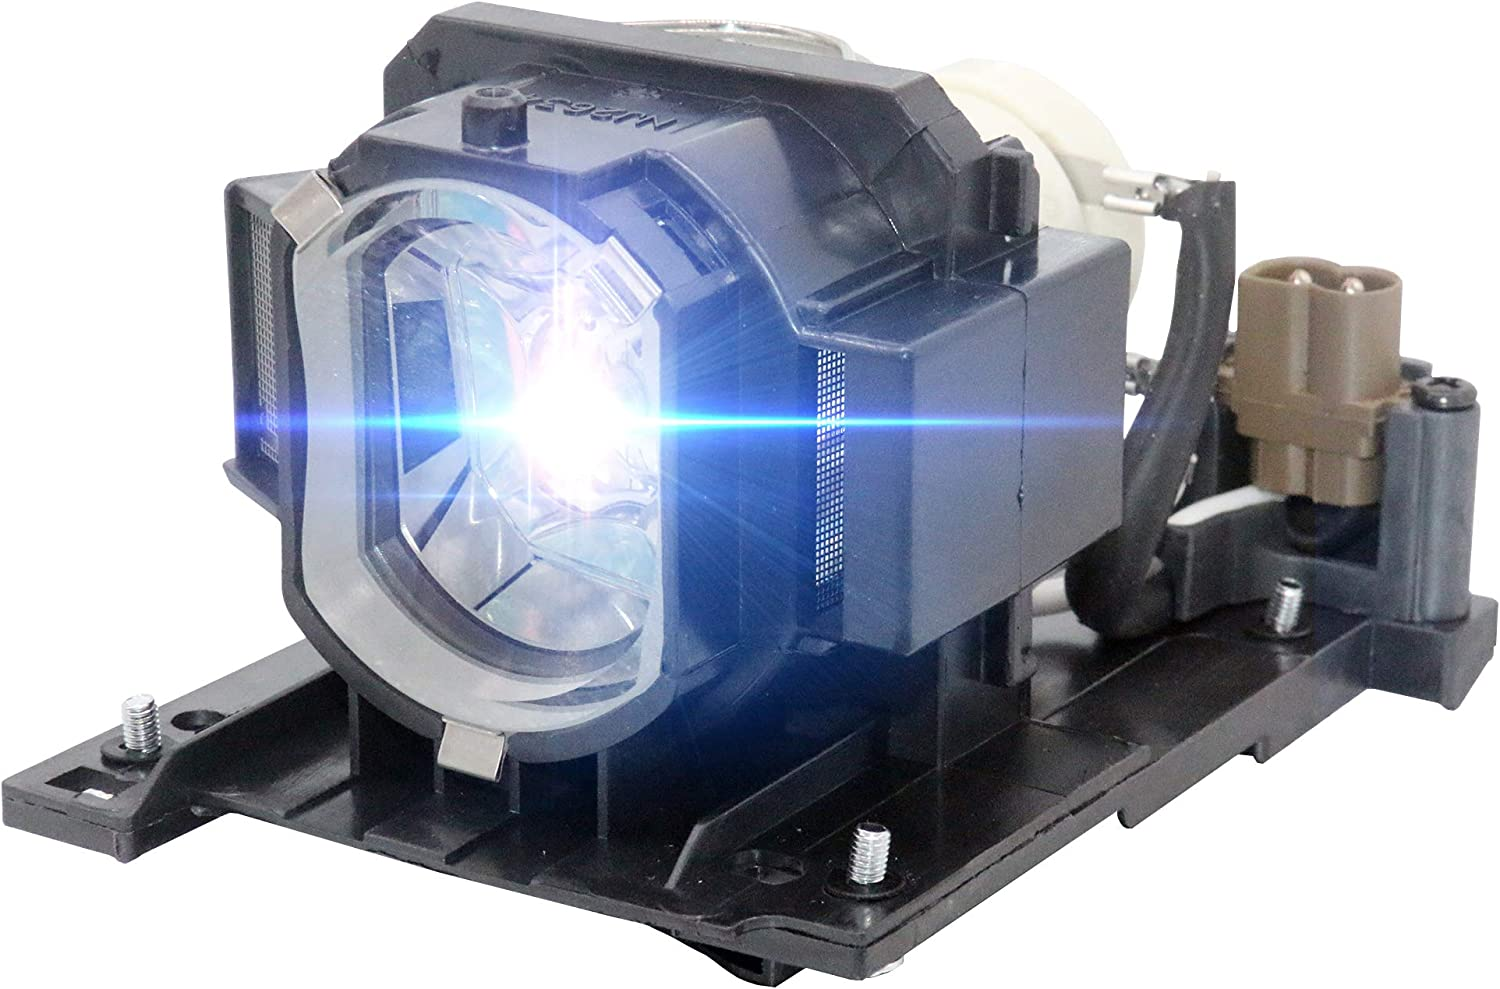 CTBAIER DT01021 Projector Lamp with Housing for Hitachi CP-X2010N CP-X2011N CP-X2010 CP-X2514WN CP-X2510 CP-X2510N CP-X3011 CP-X4014WN CP-X4011N CP-X2011 Replacement Projector Lamp